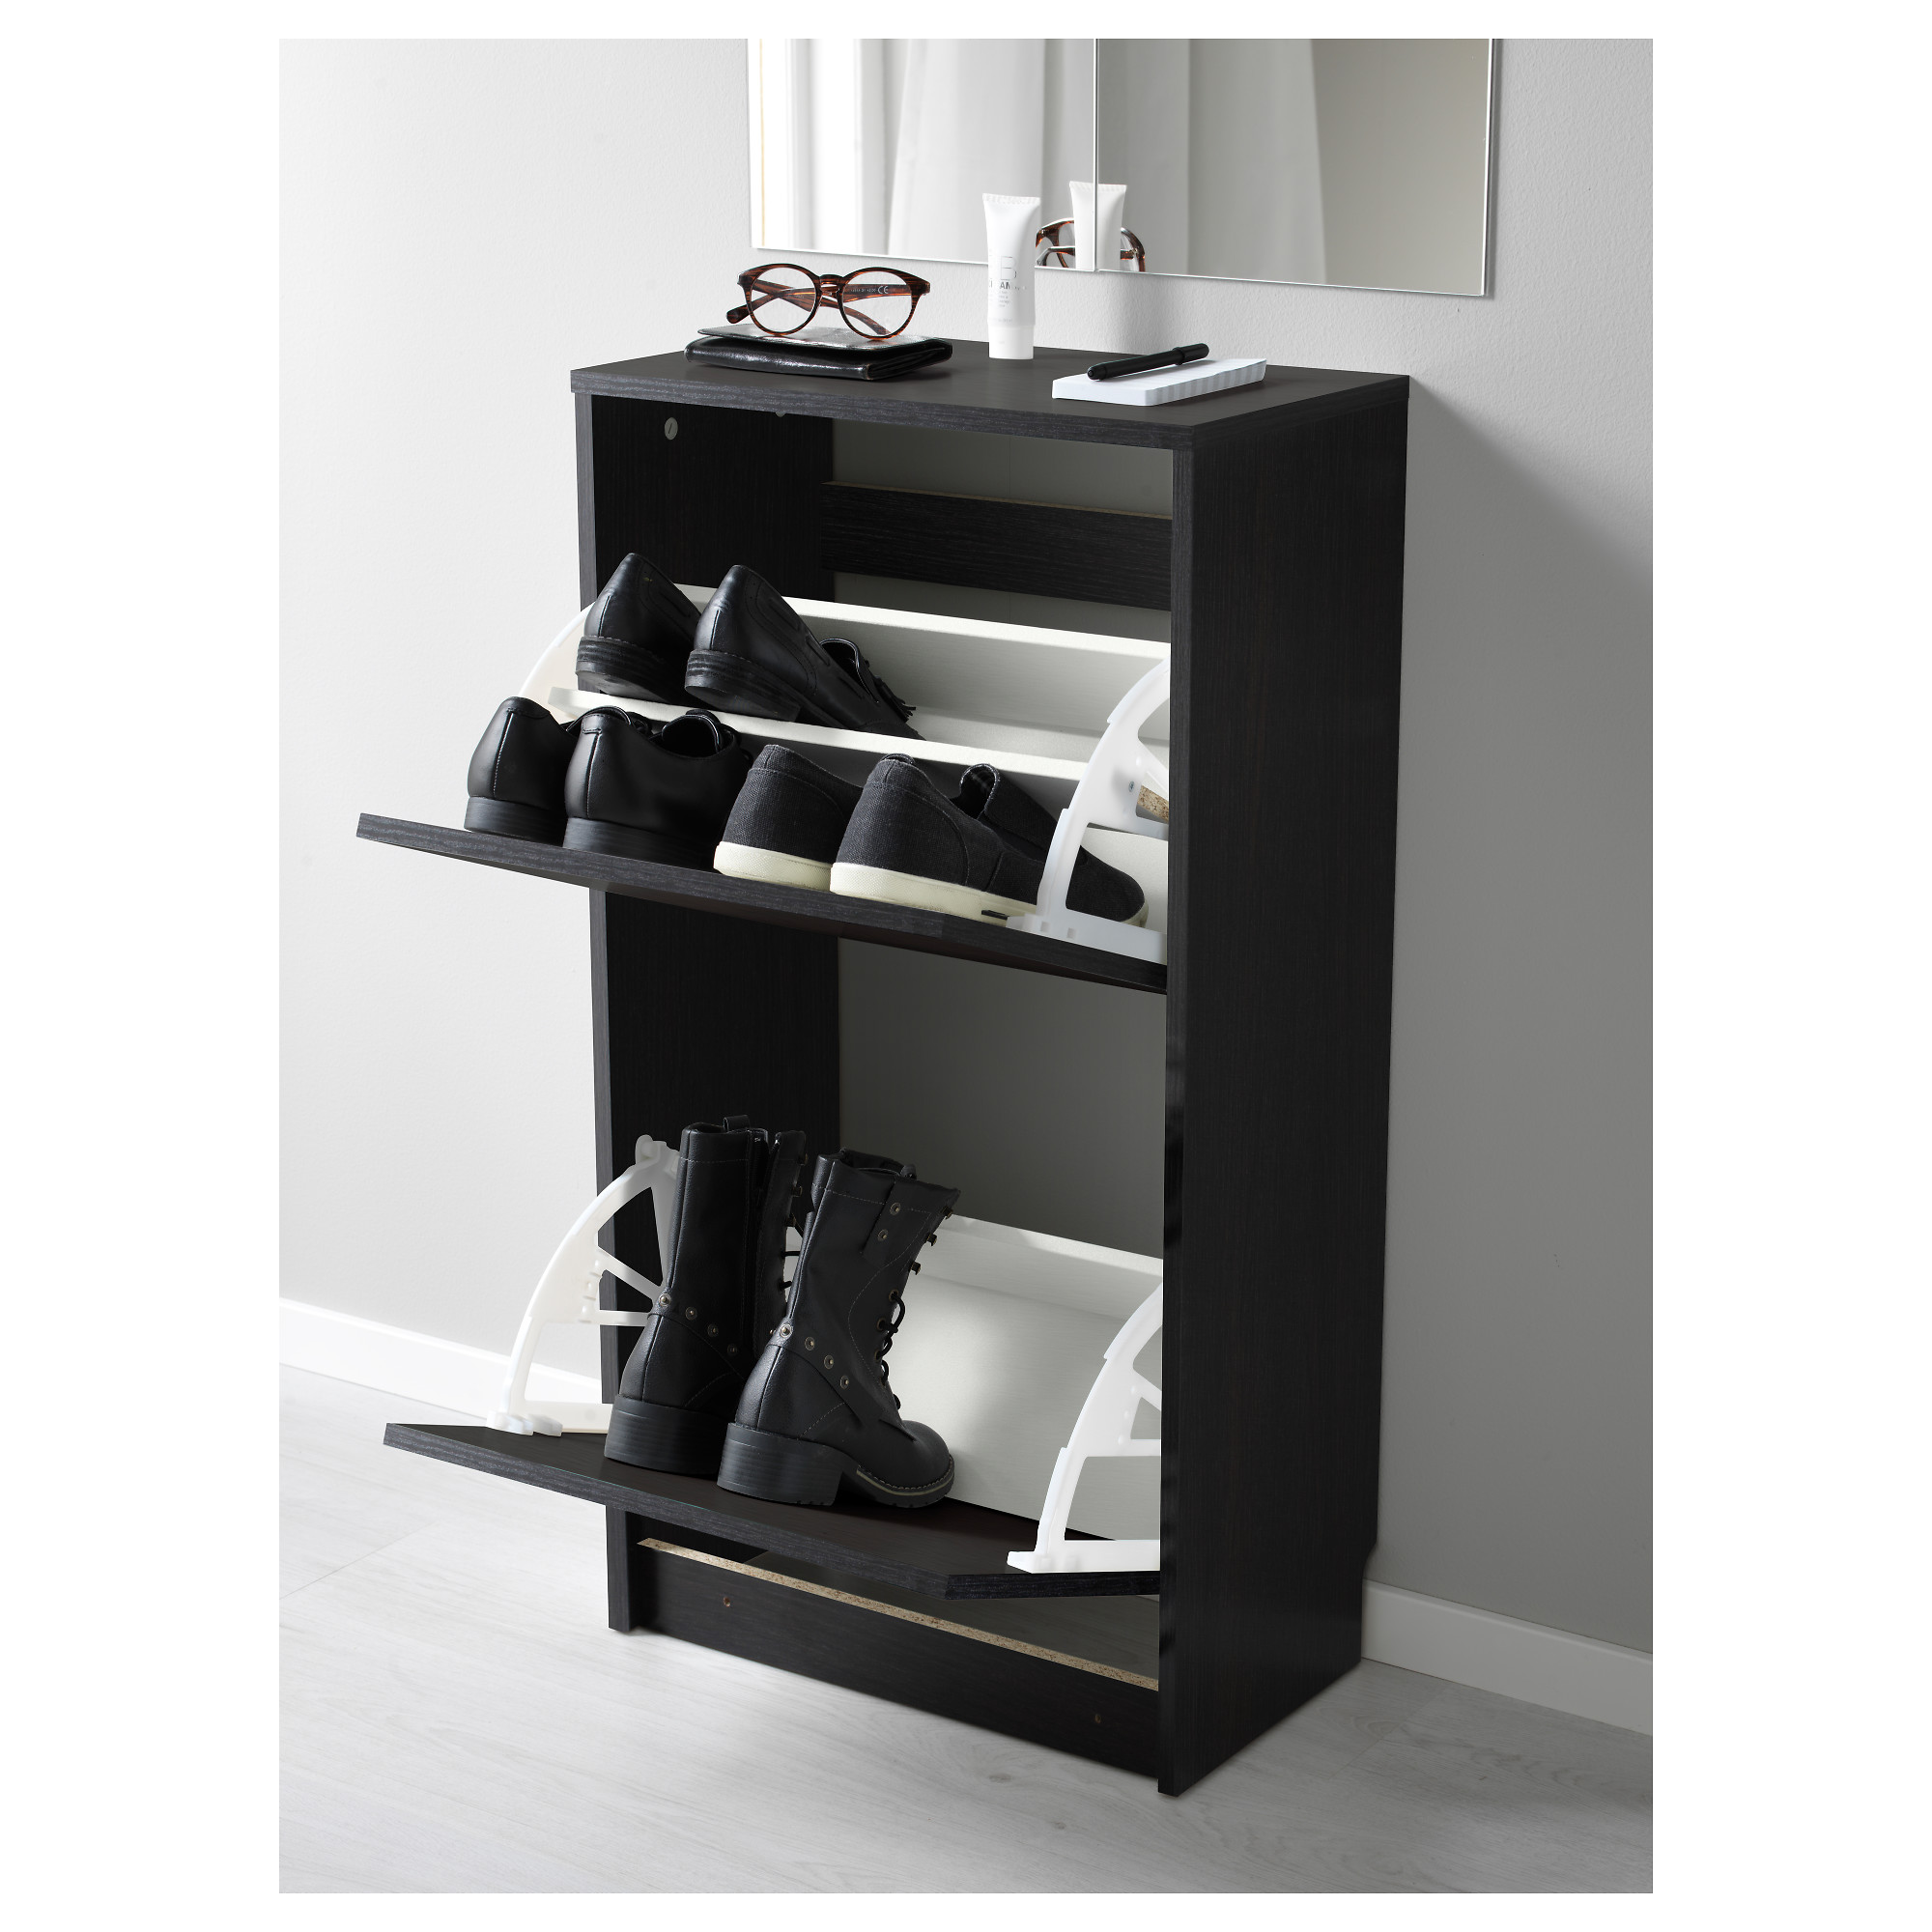 BISSA - shoe cabinet with 2